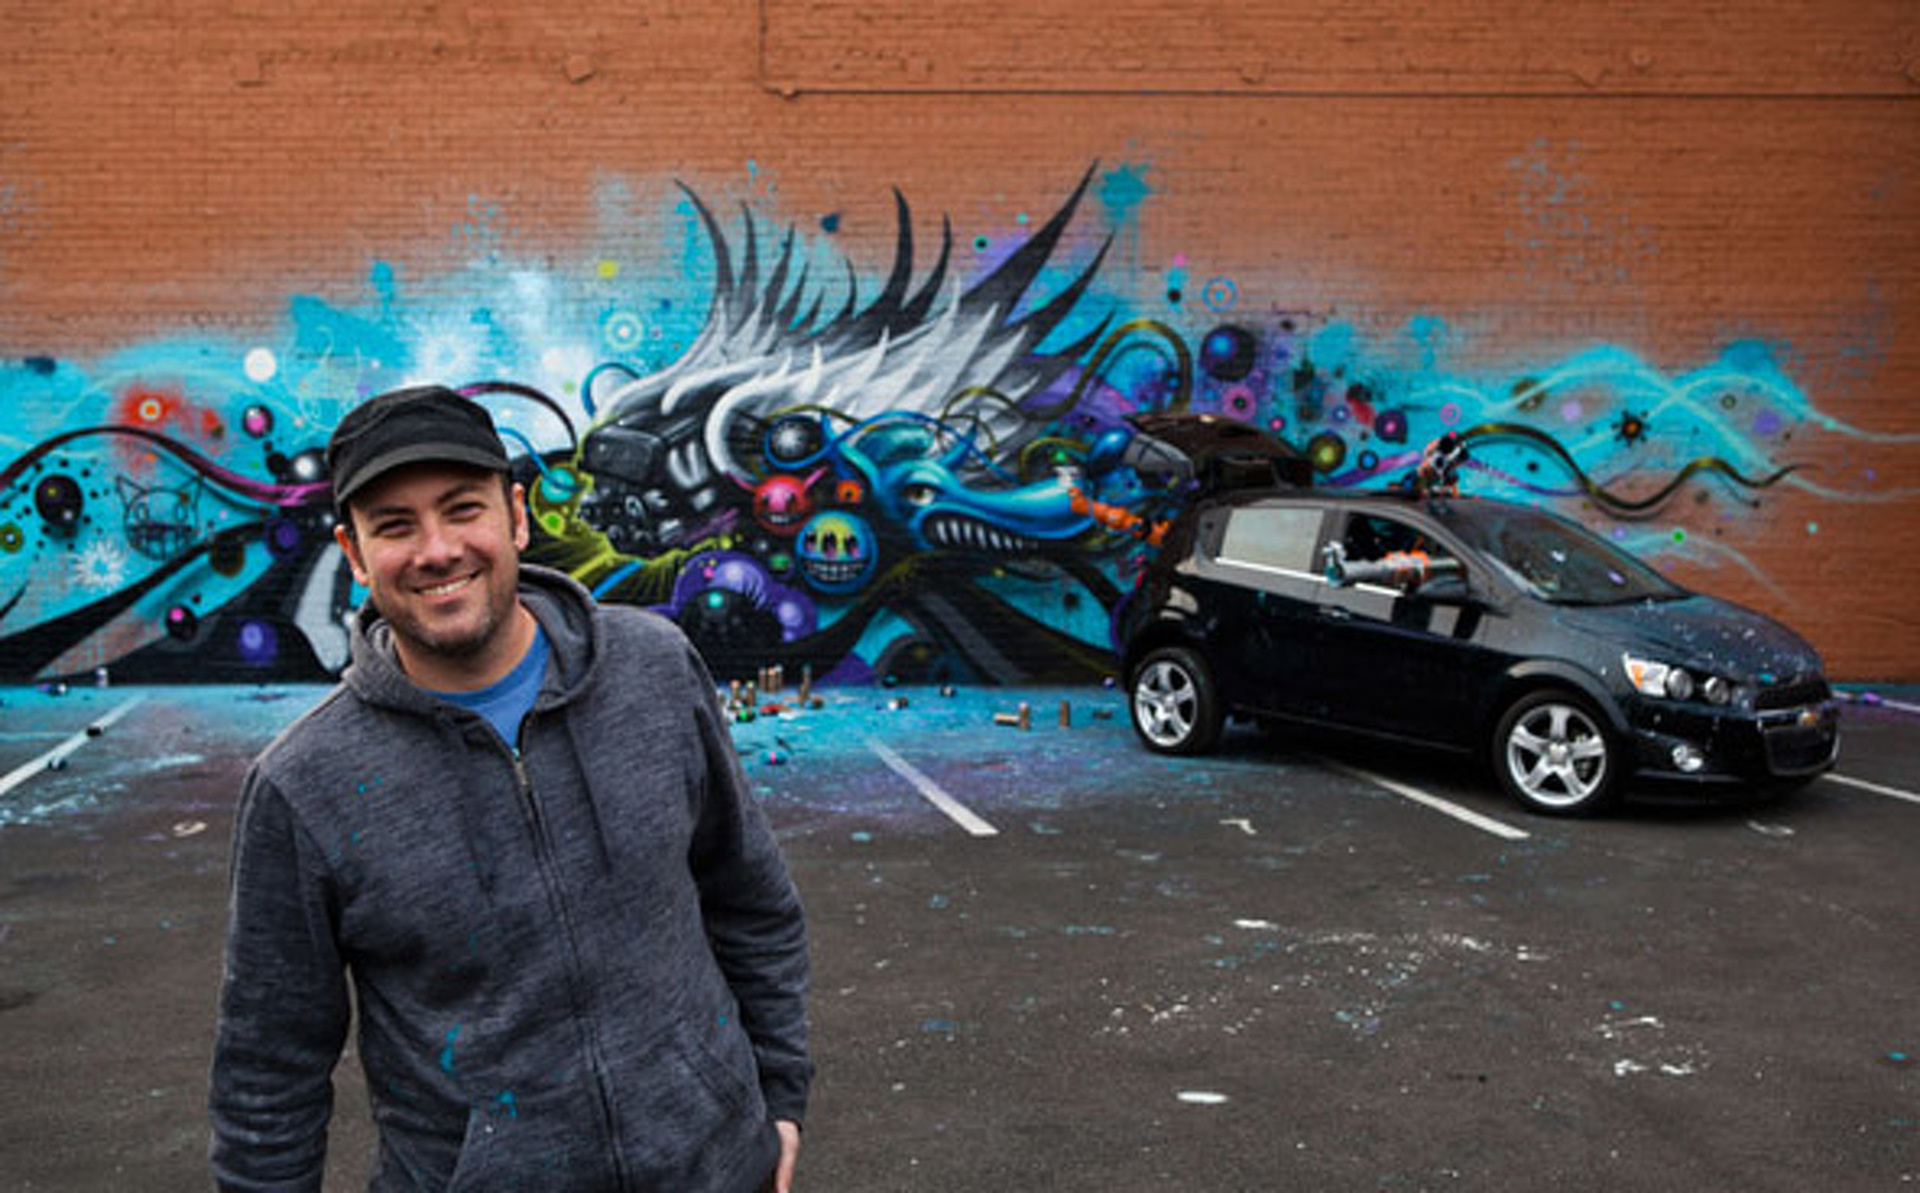 Video: Jeff Soto creates Street Art with a Robot and a Chevy Sonic